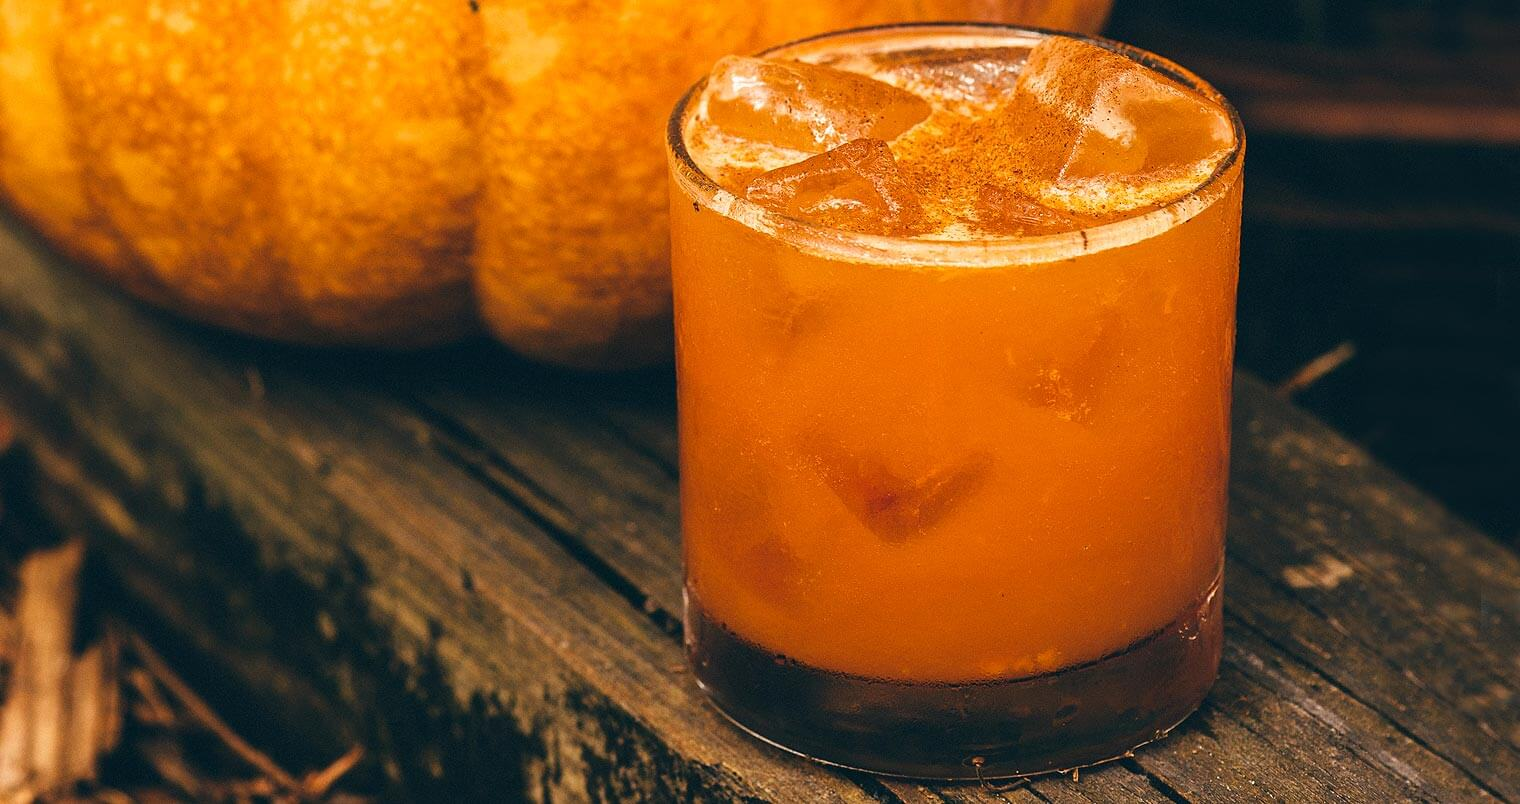 Smashing Pumpkins, cocktail and pumpkin